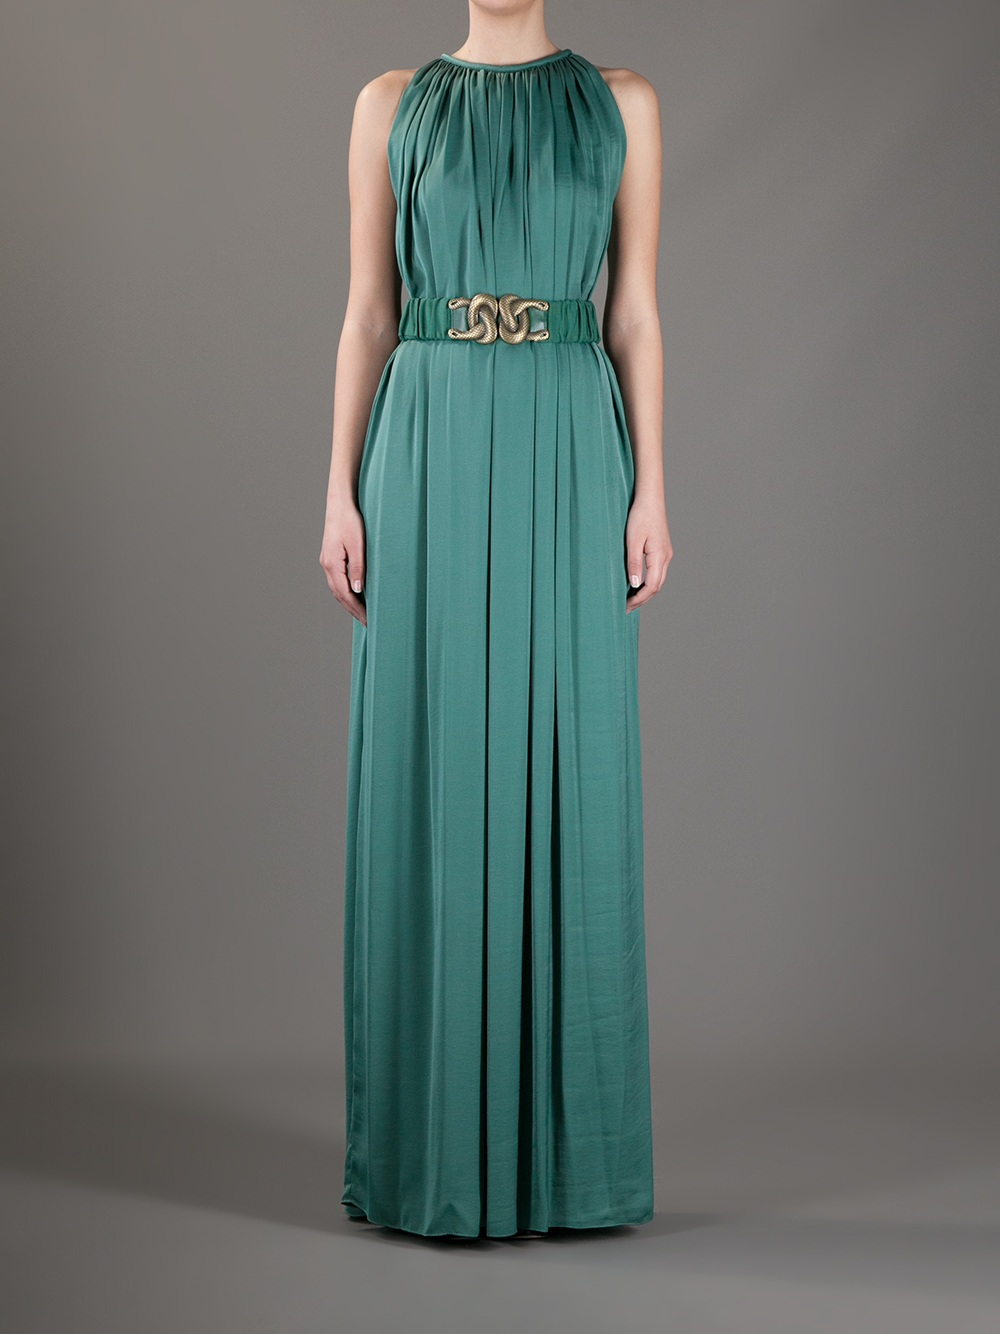 Lyst Pleated In Green Dress Maxi Intropia X8cgB8